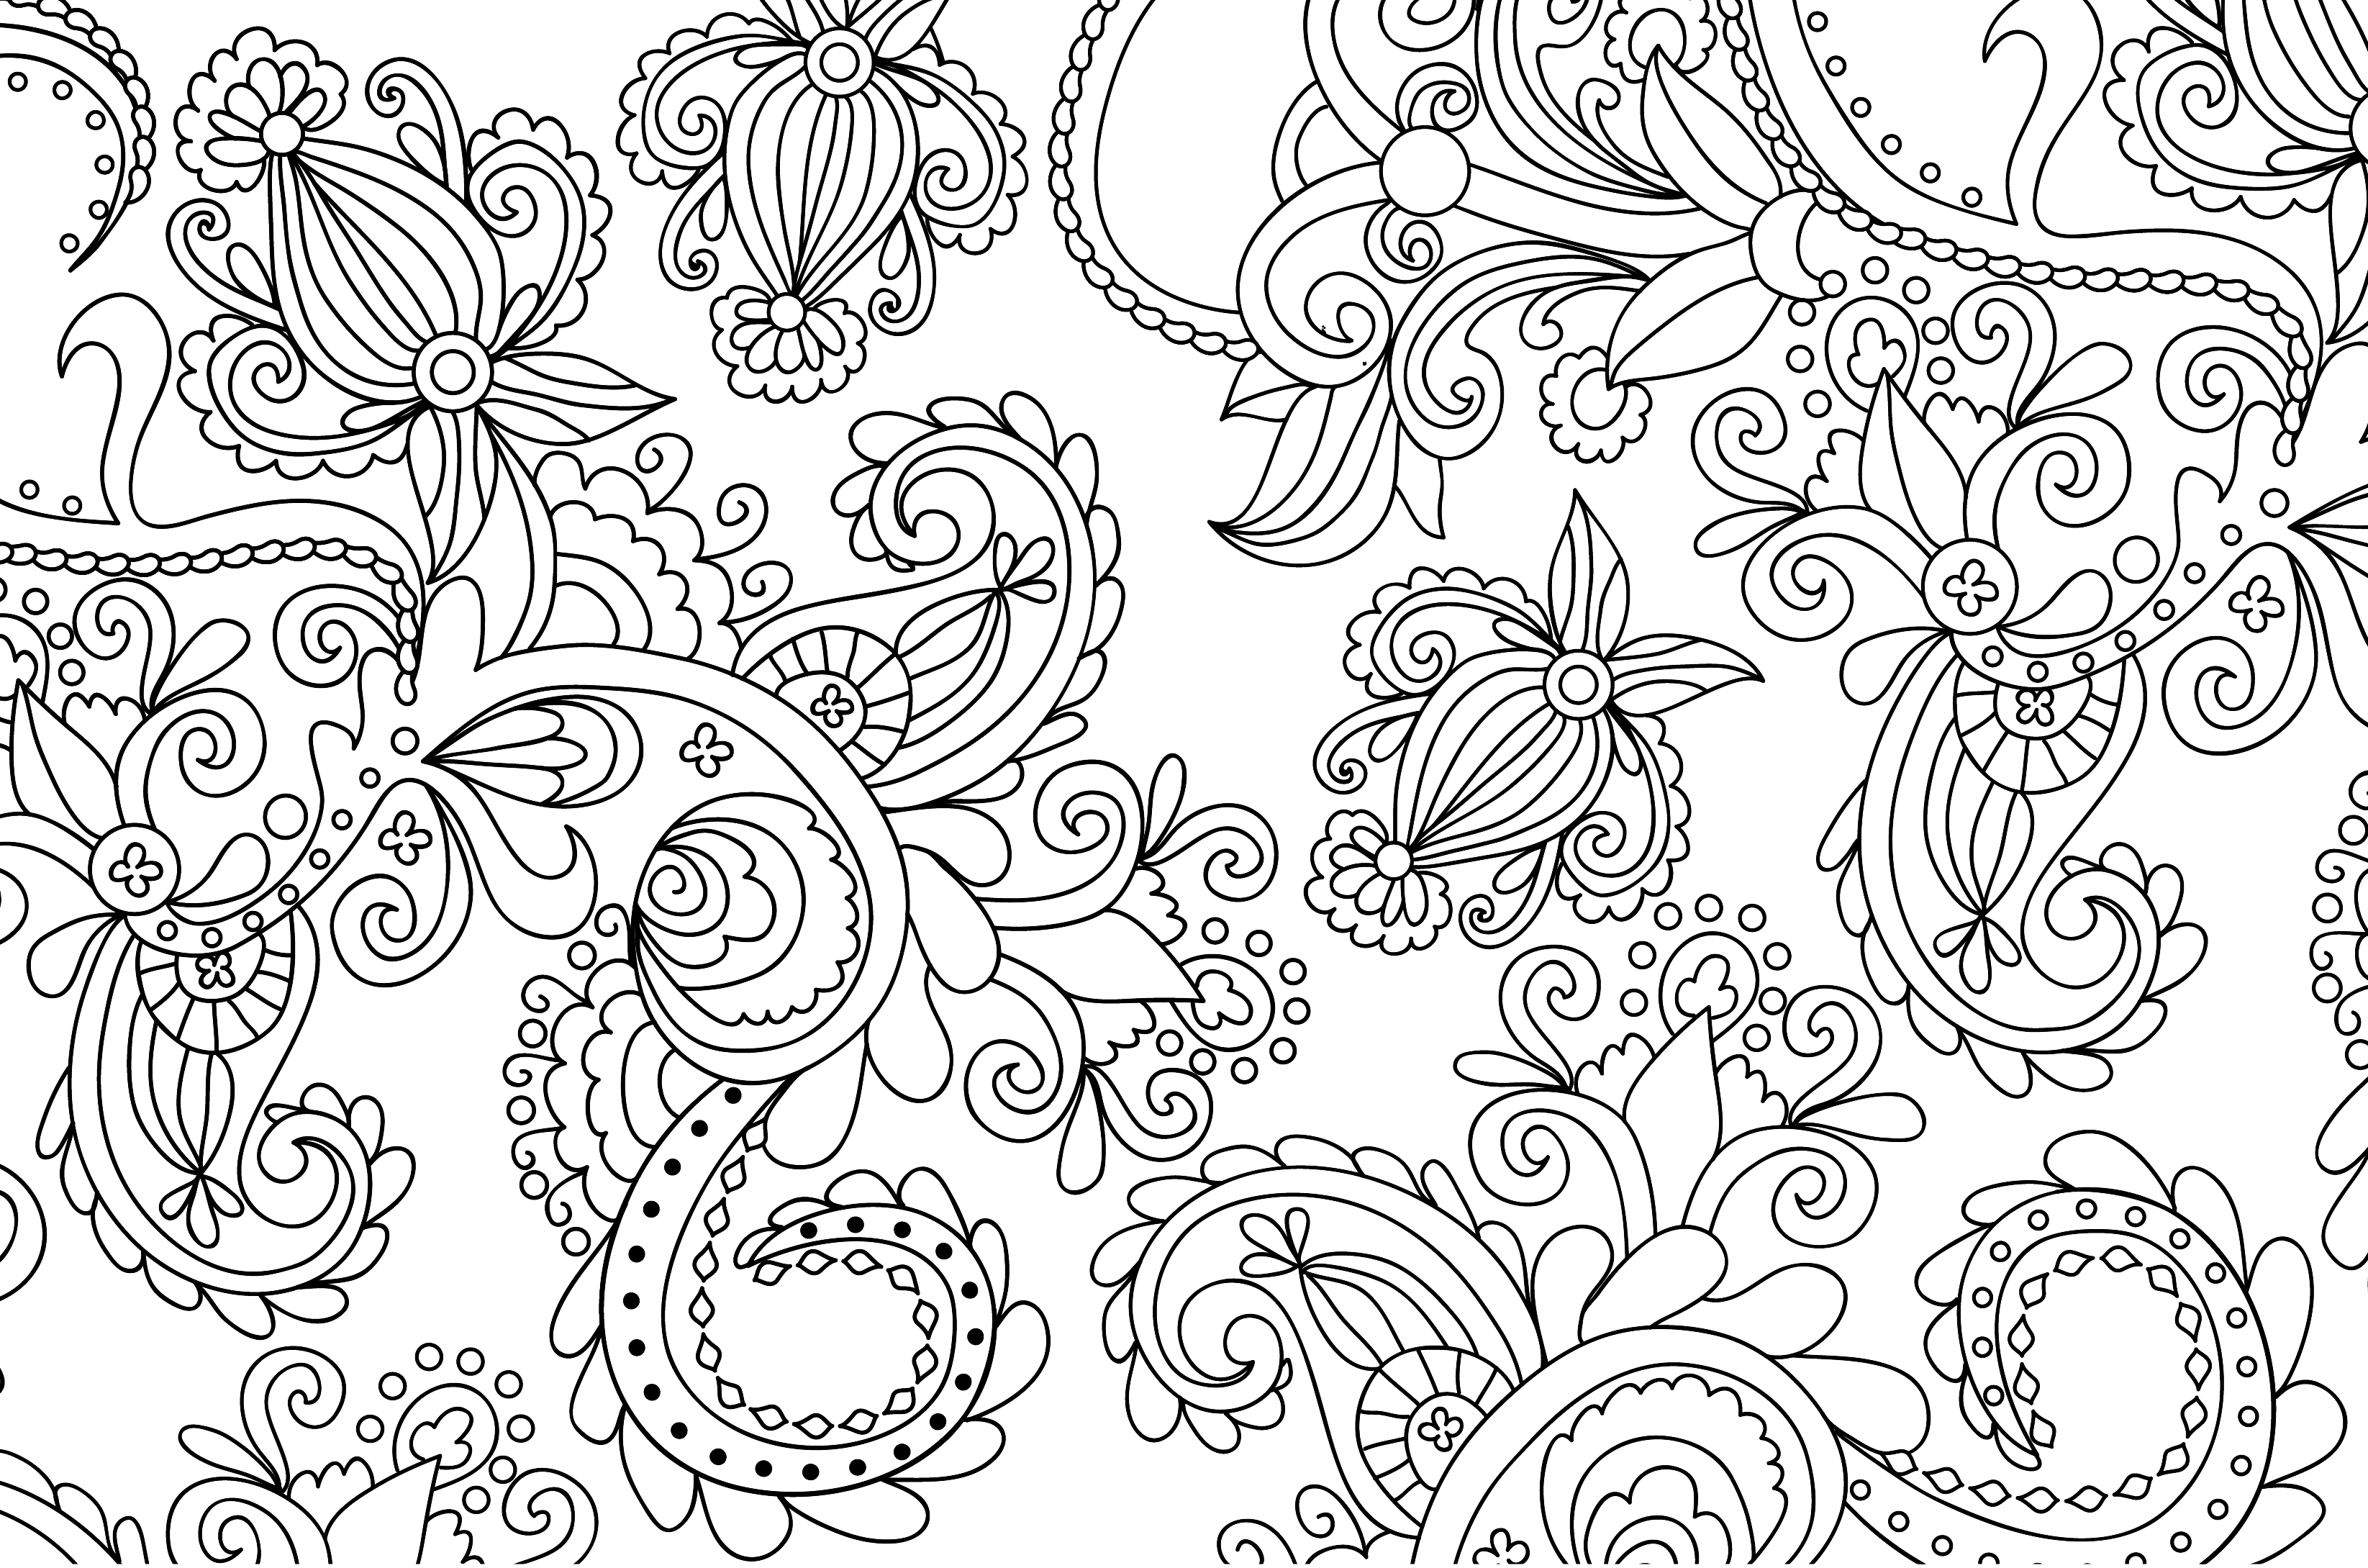 Adult Coloring Craze Party Bristol Historical Society